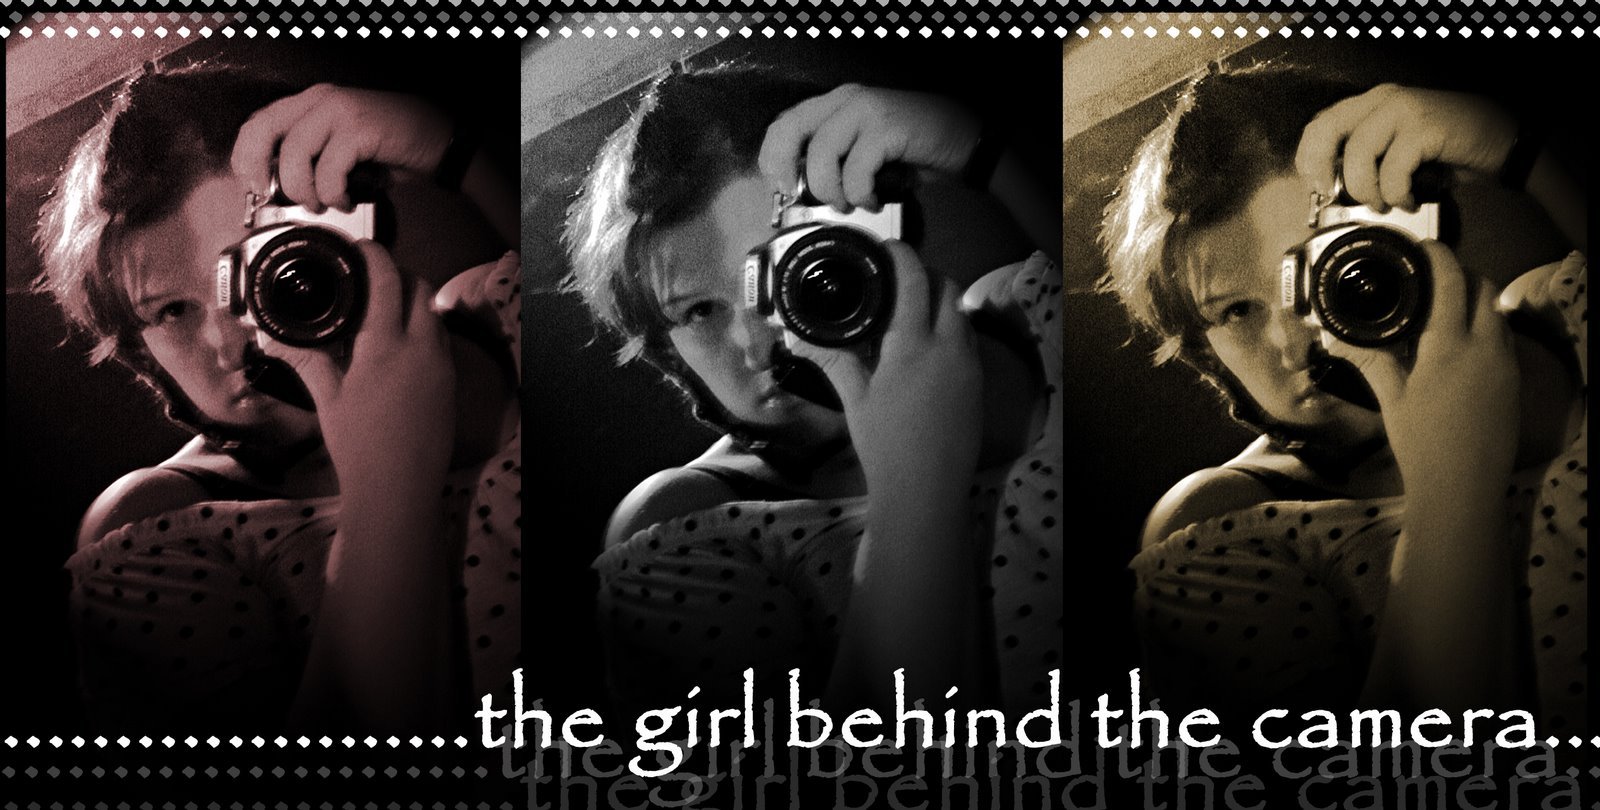 the girl behind the camera